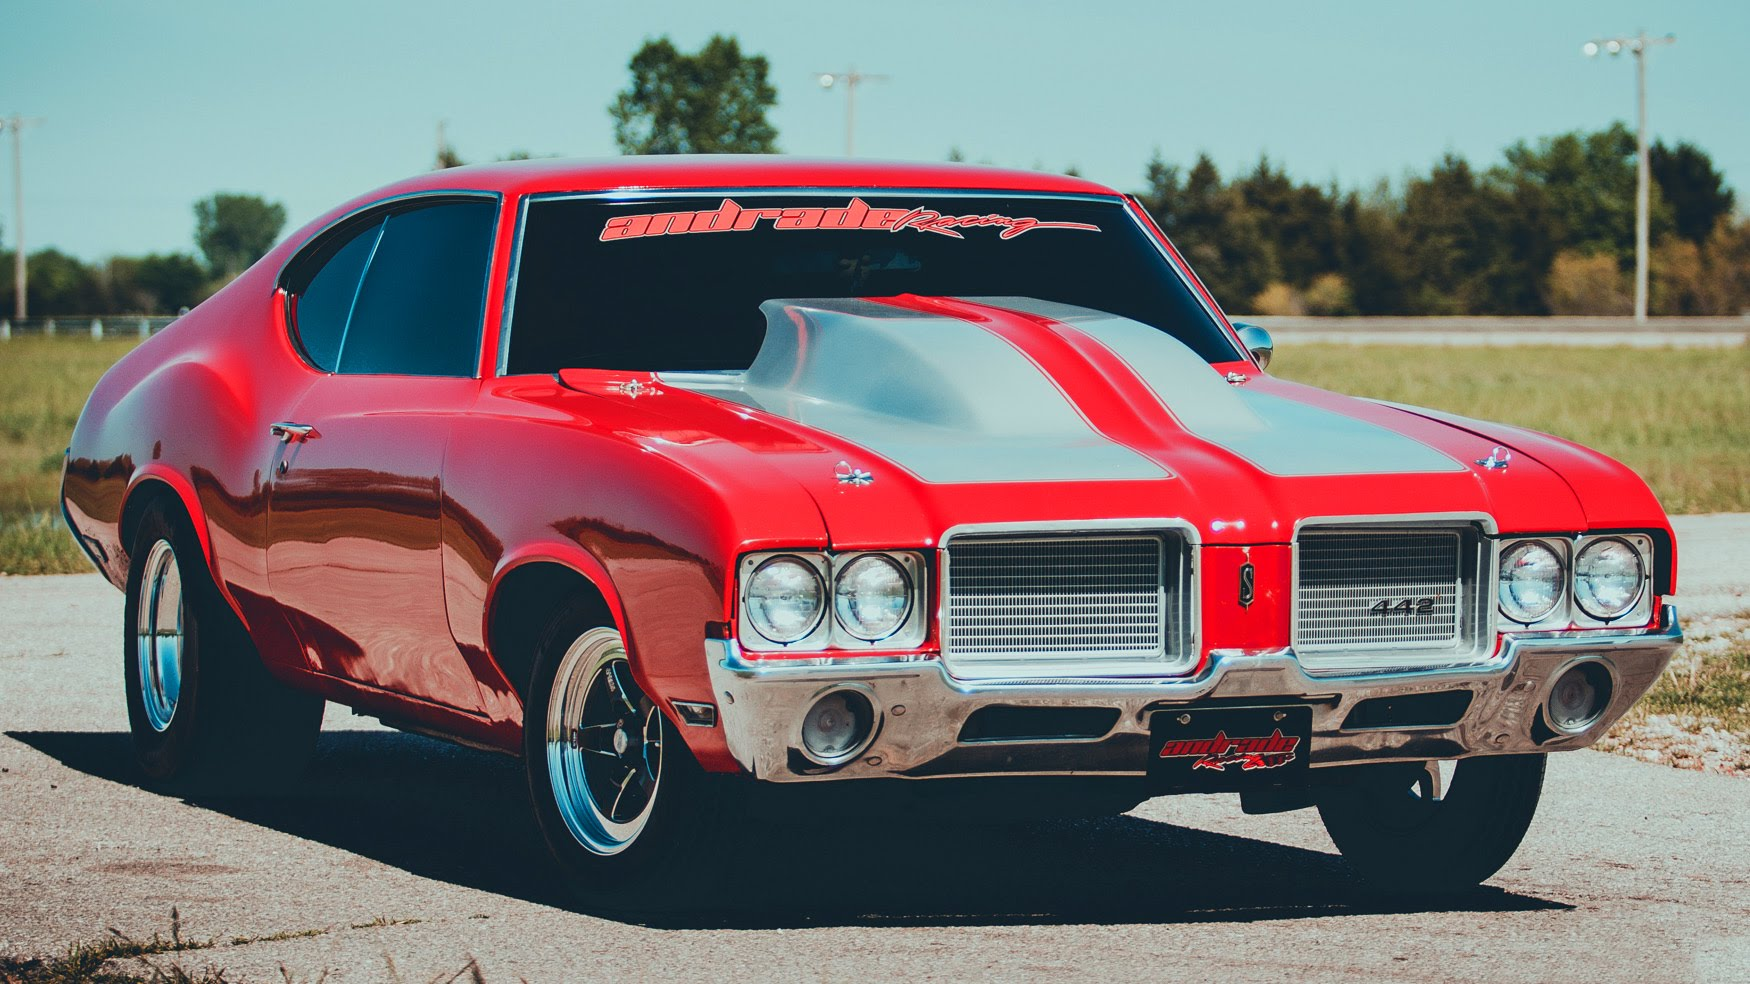 Classic Olds Cutlass with 350-Nitrous Shot